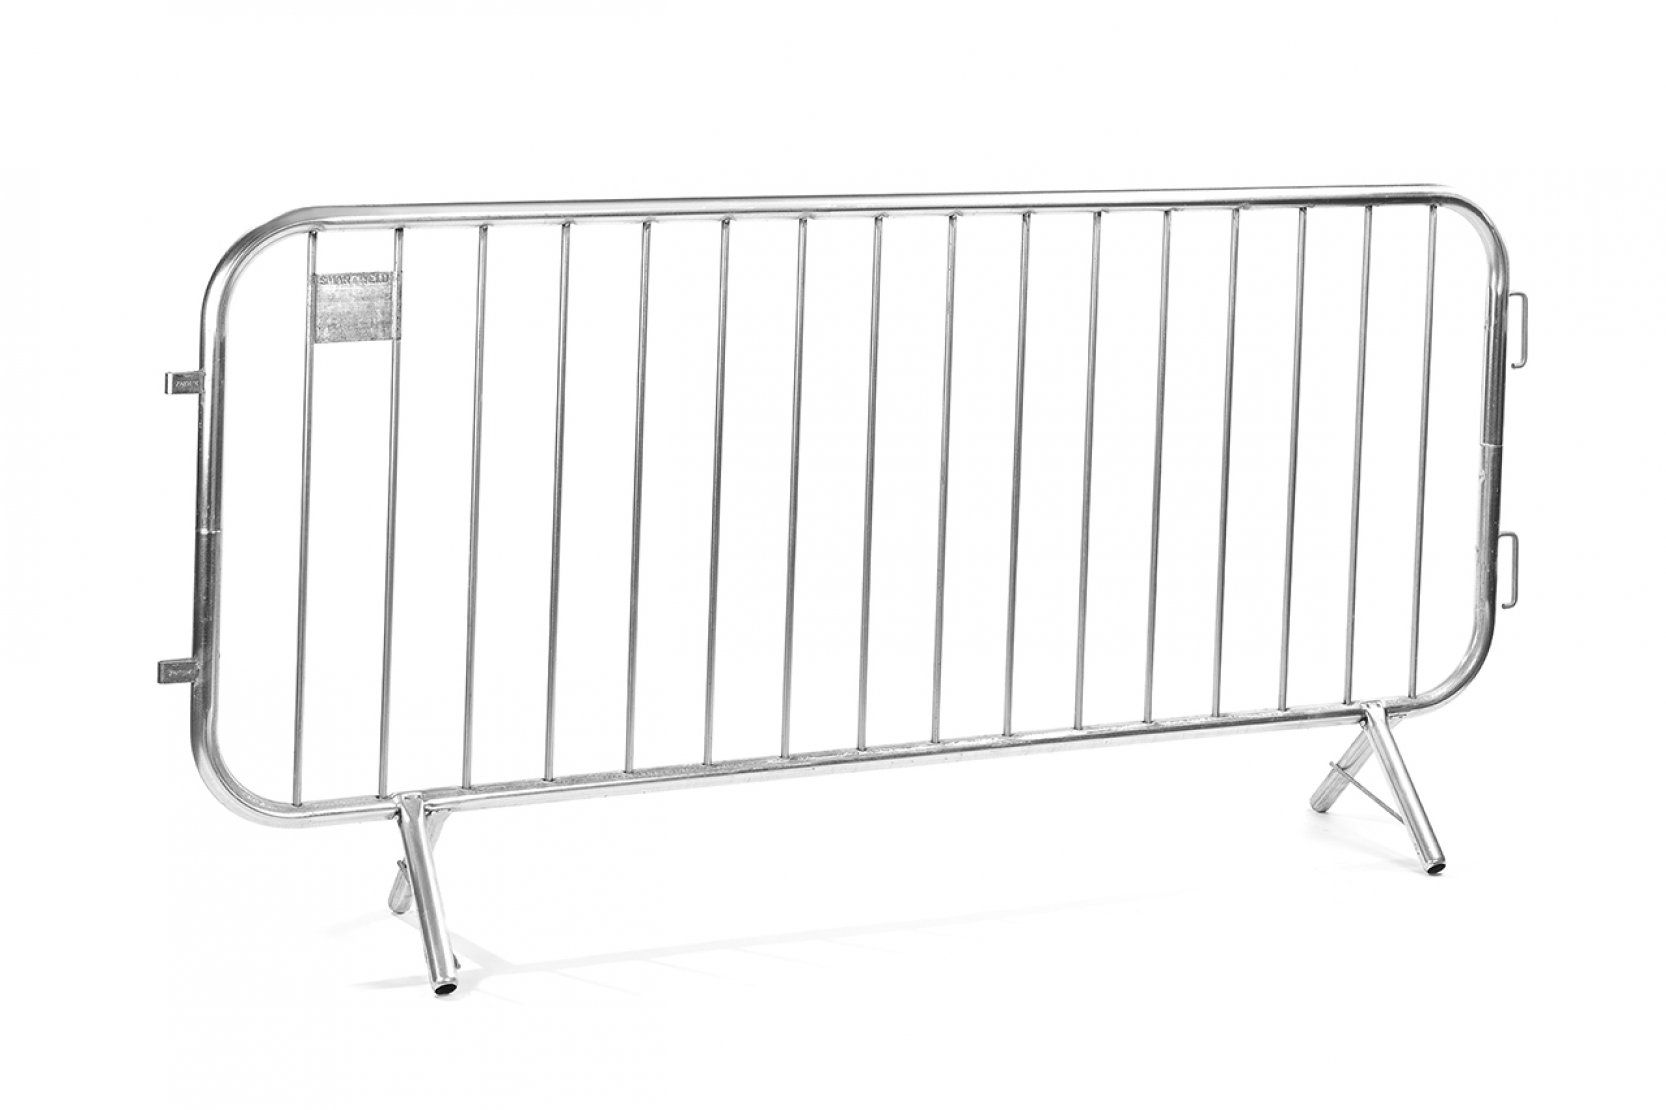 Crowd Control Barrier Fencing for Hire - 2.3m Fencing Barrier - BE Event Hire